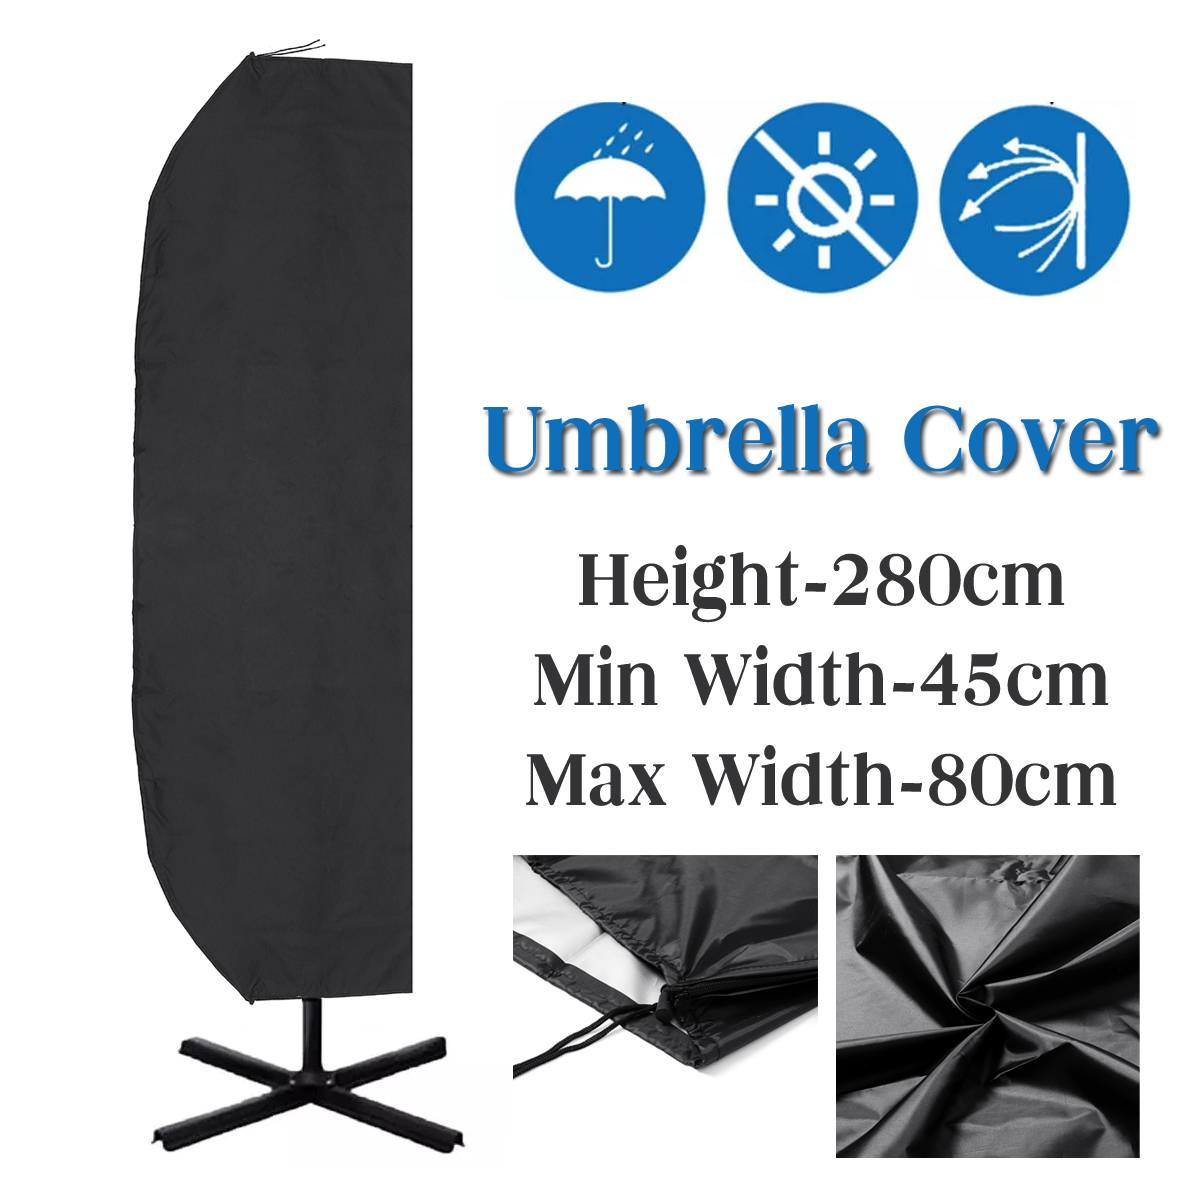 280cm Height Parasol Banana Umbrella Cover Waterproof Windproof Outdoors Shelter Rain Covers Accessories